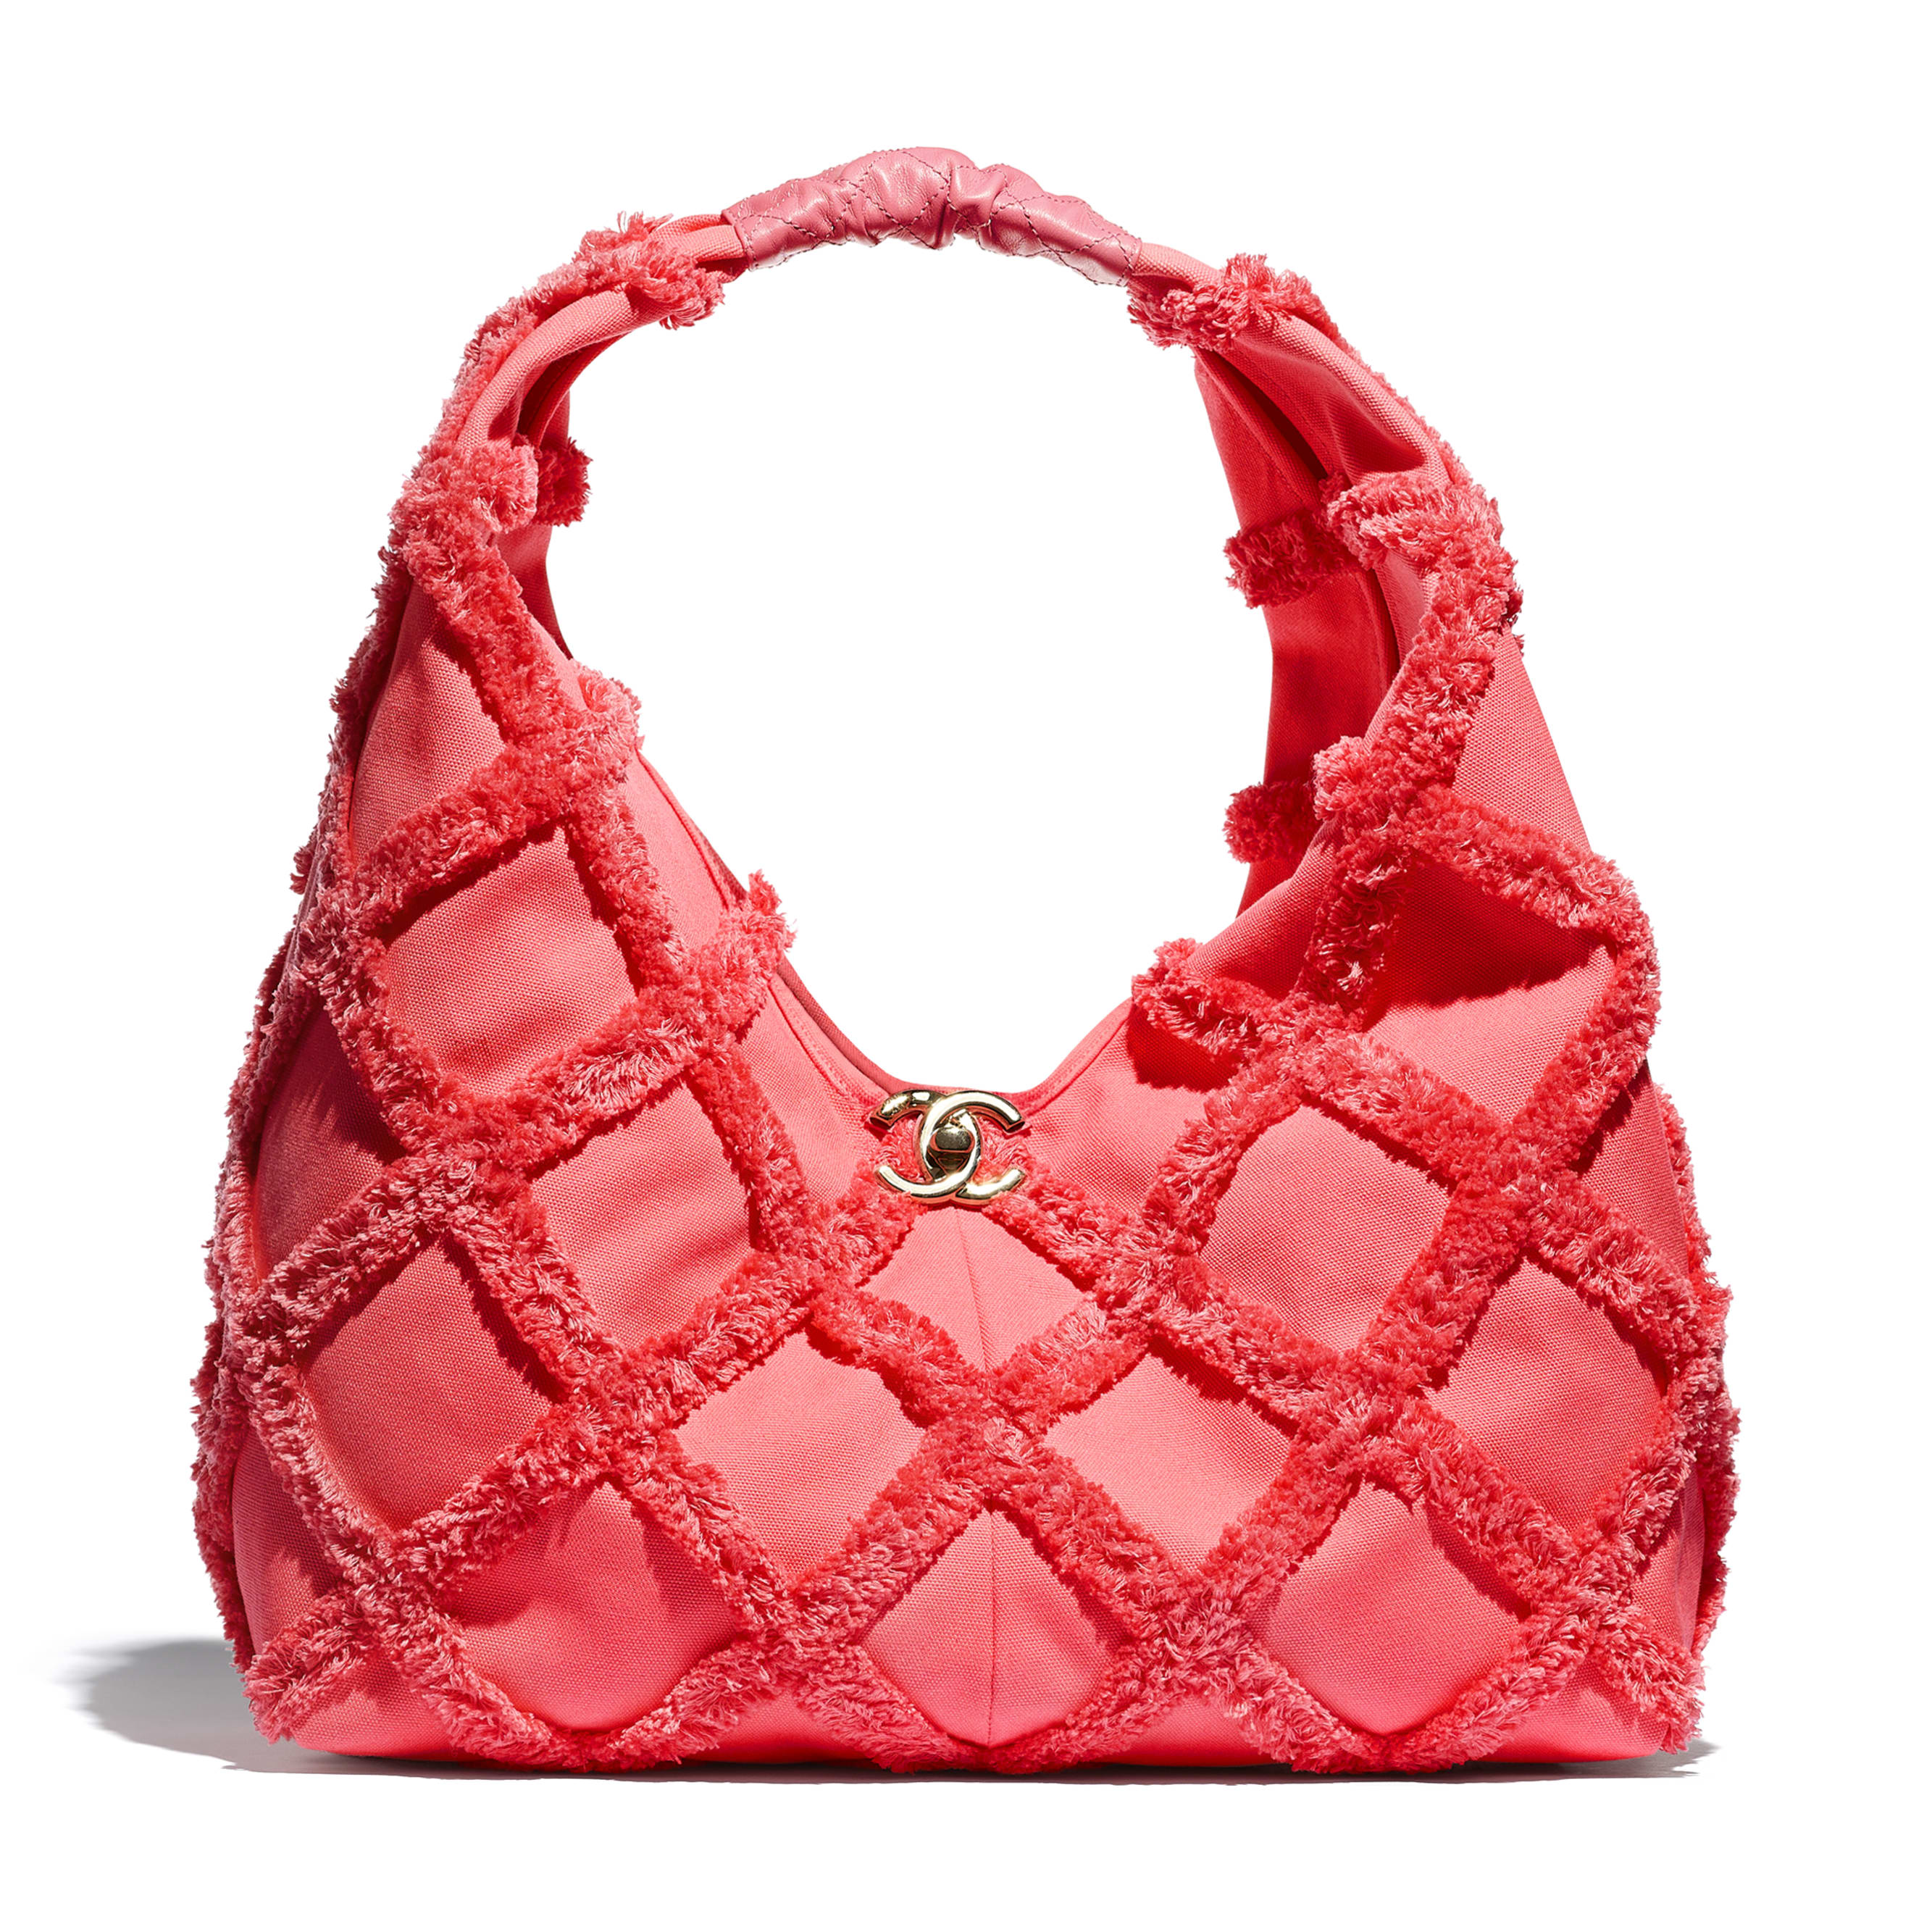 Large Hobo Bag - Coral - Cotton Canvas, Calfskin & Gold-Tone Metal - CHANEL - Default view - see standard sized version